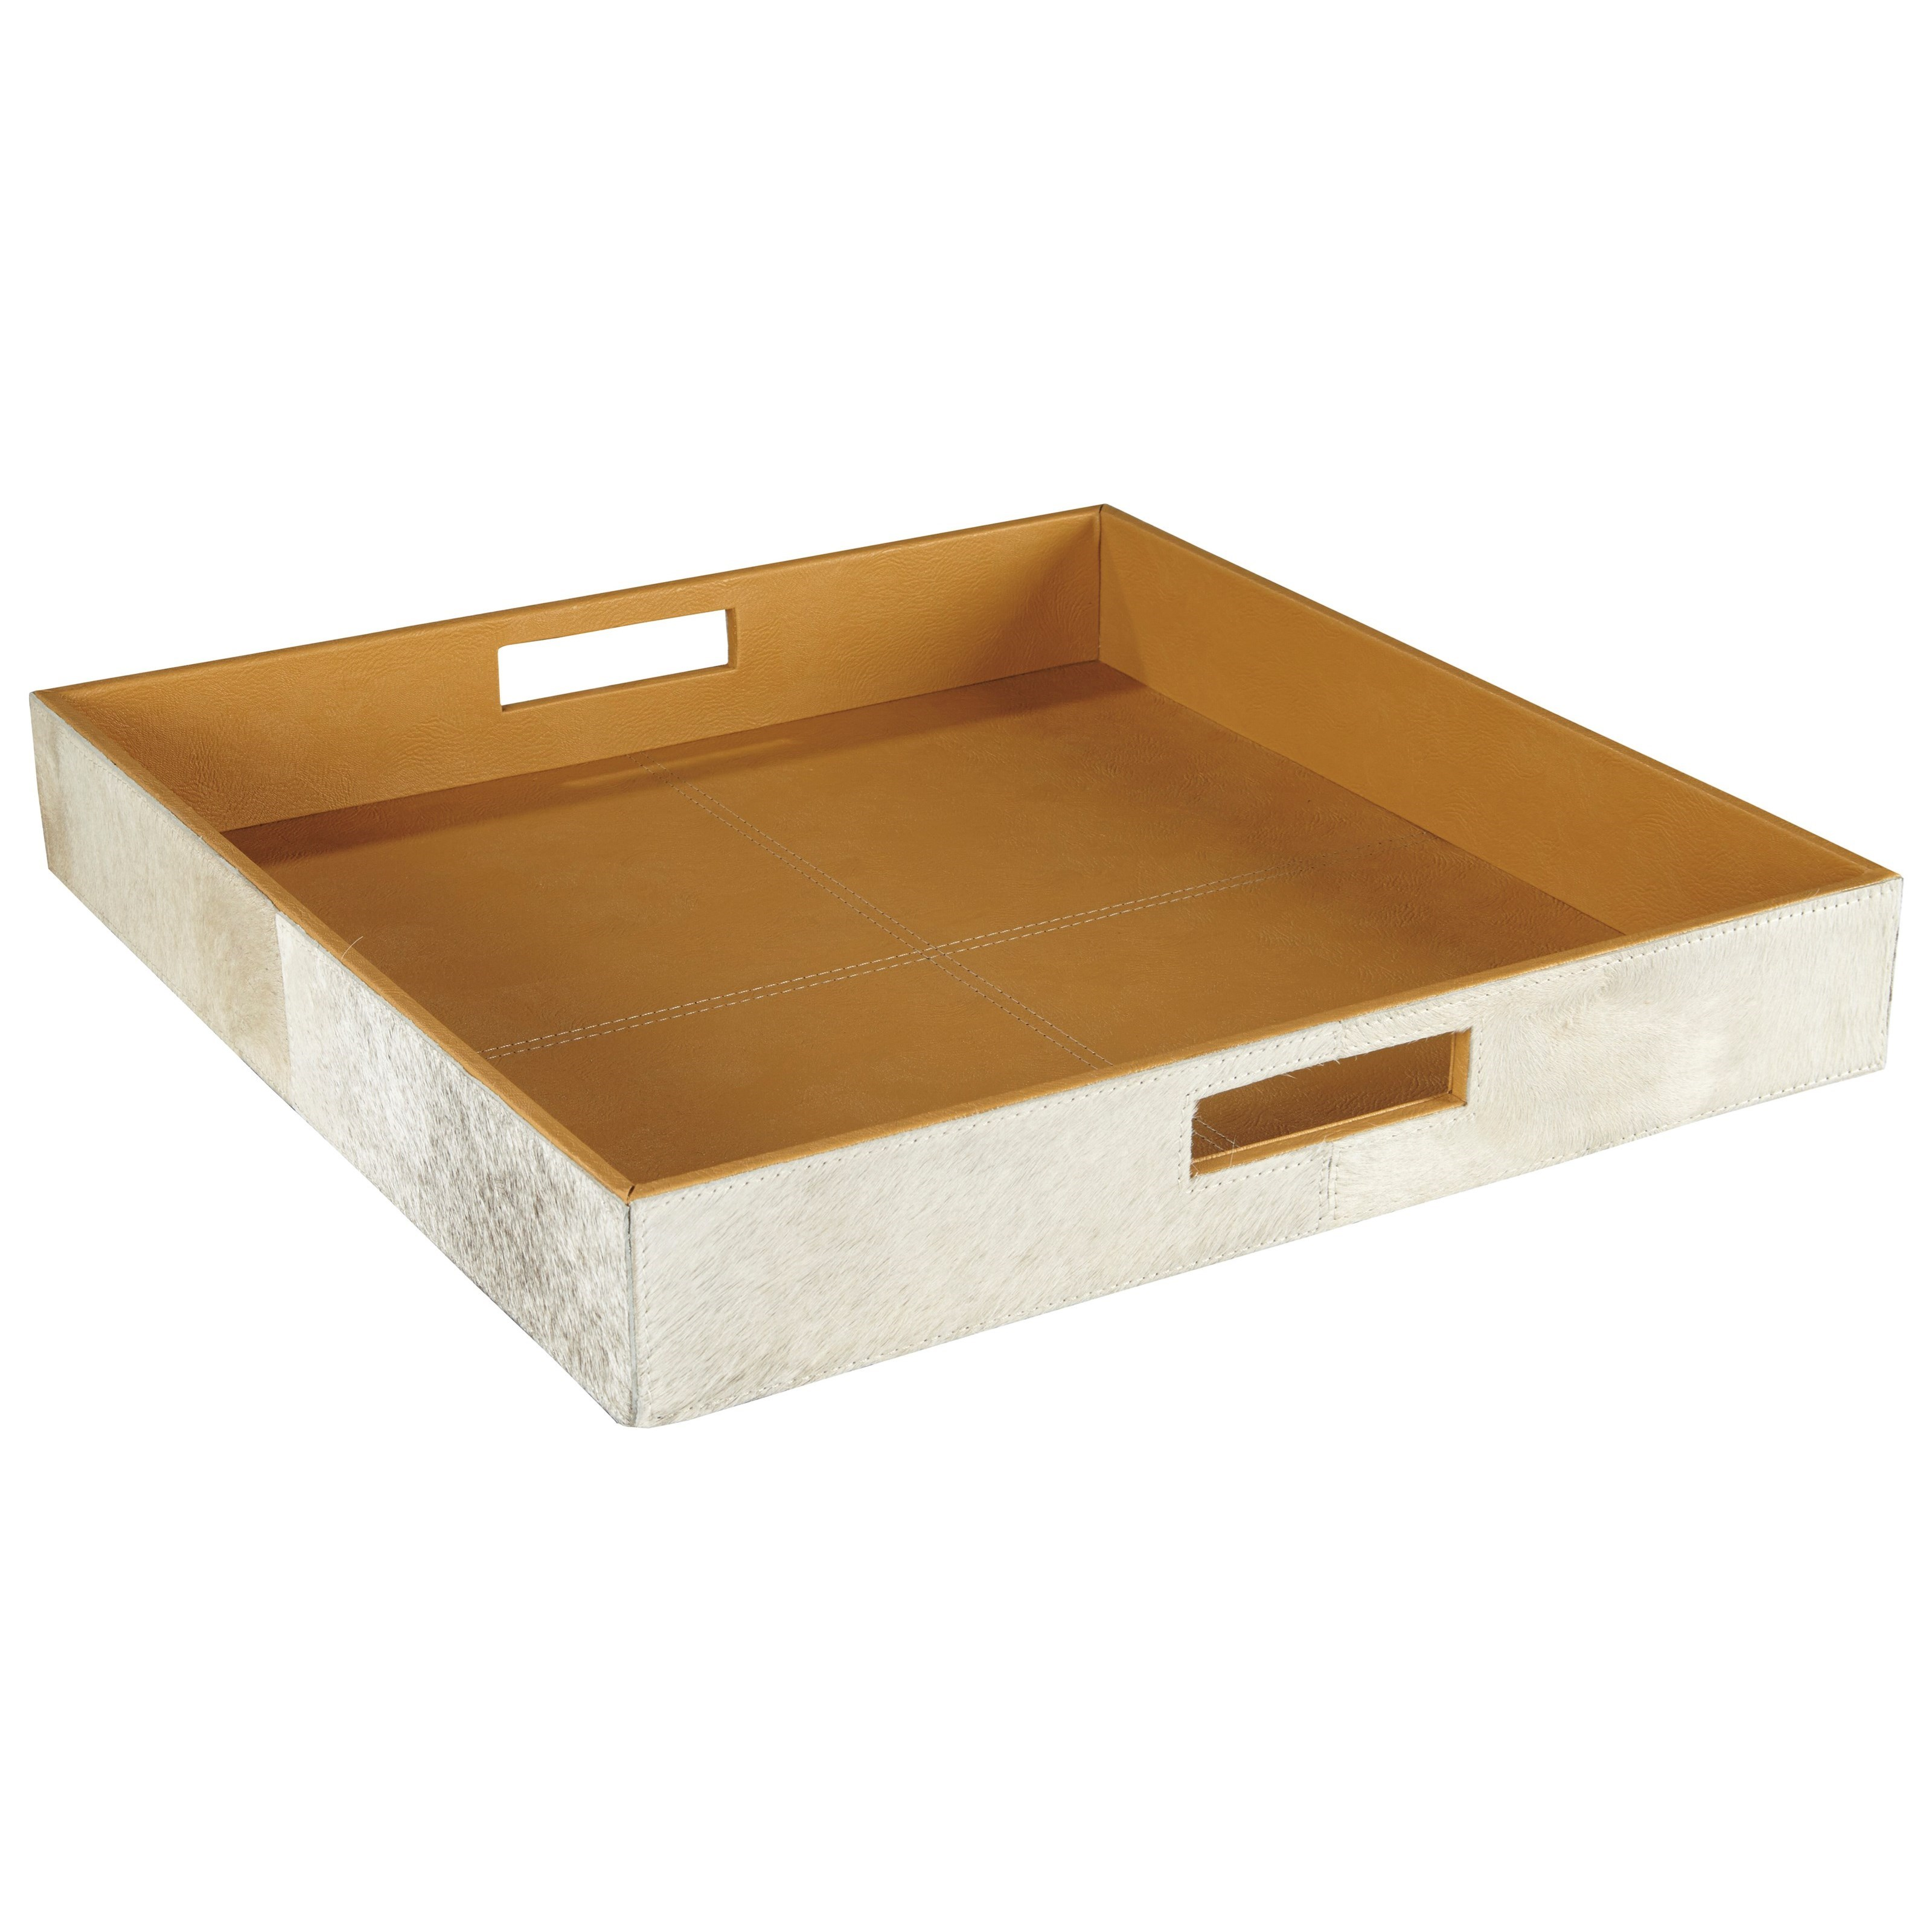 Signature Design by Ashley Accents Odeda Beige Tray - Item Number: A2000229T